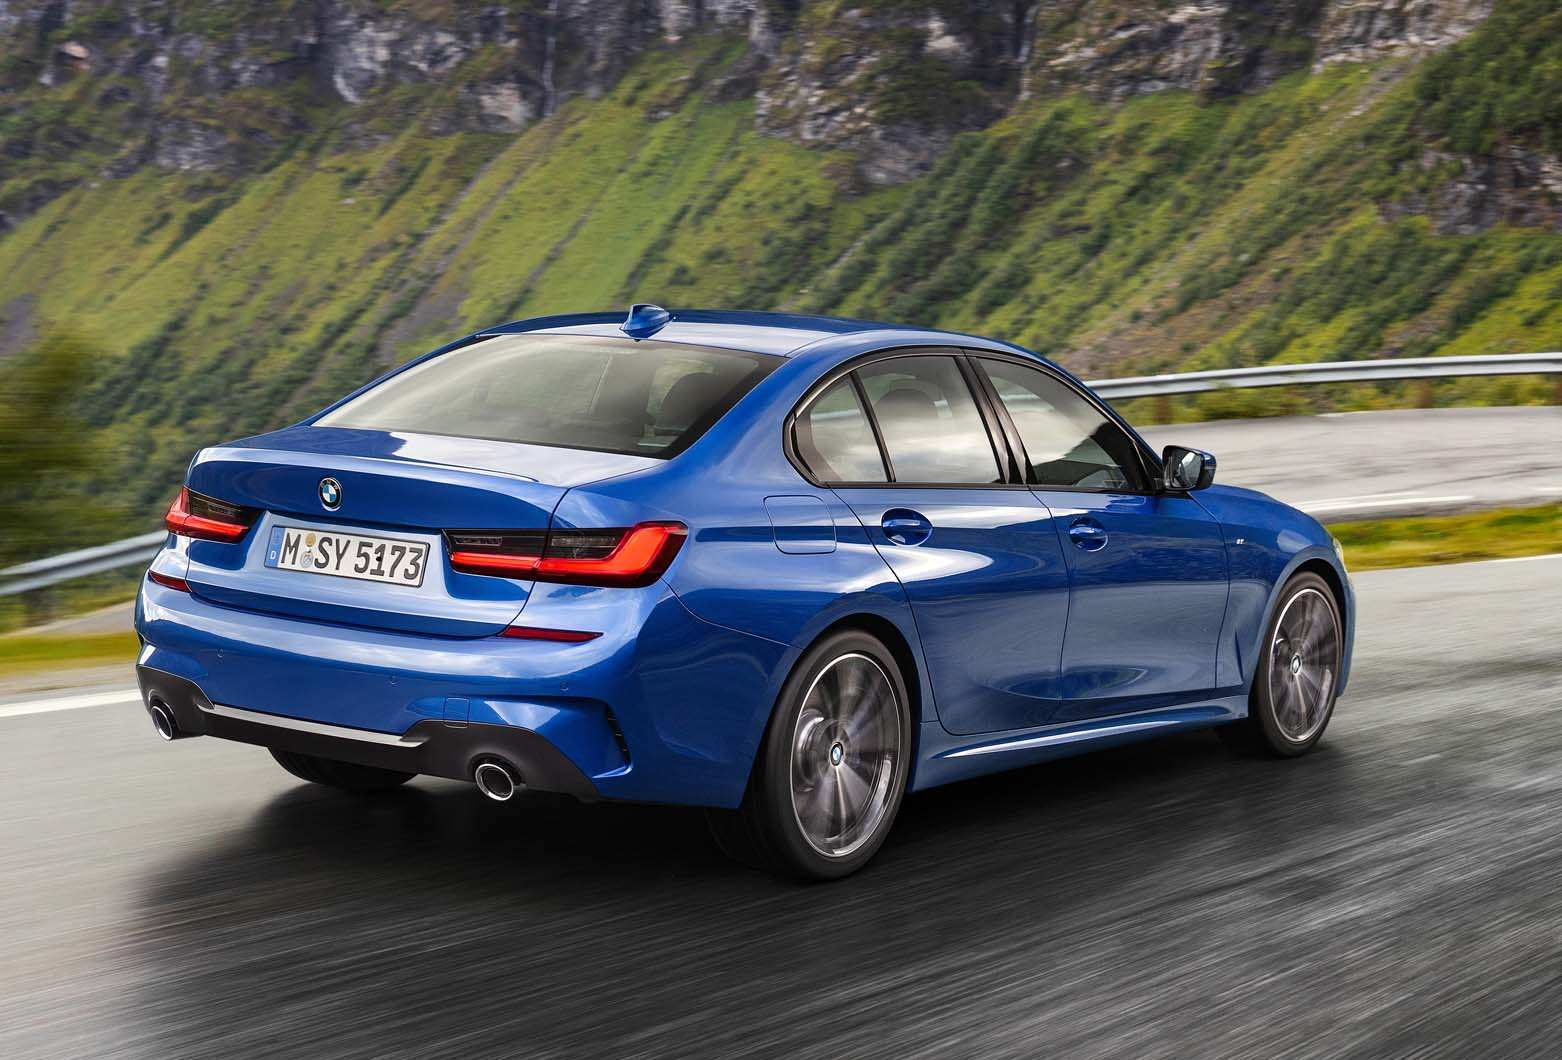 54 Great 2019 Bmw 3 Series Release Date Specs and Review for 2019 Bmw 3 Series Release Date